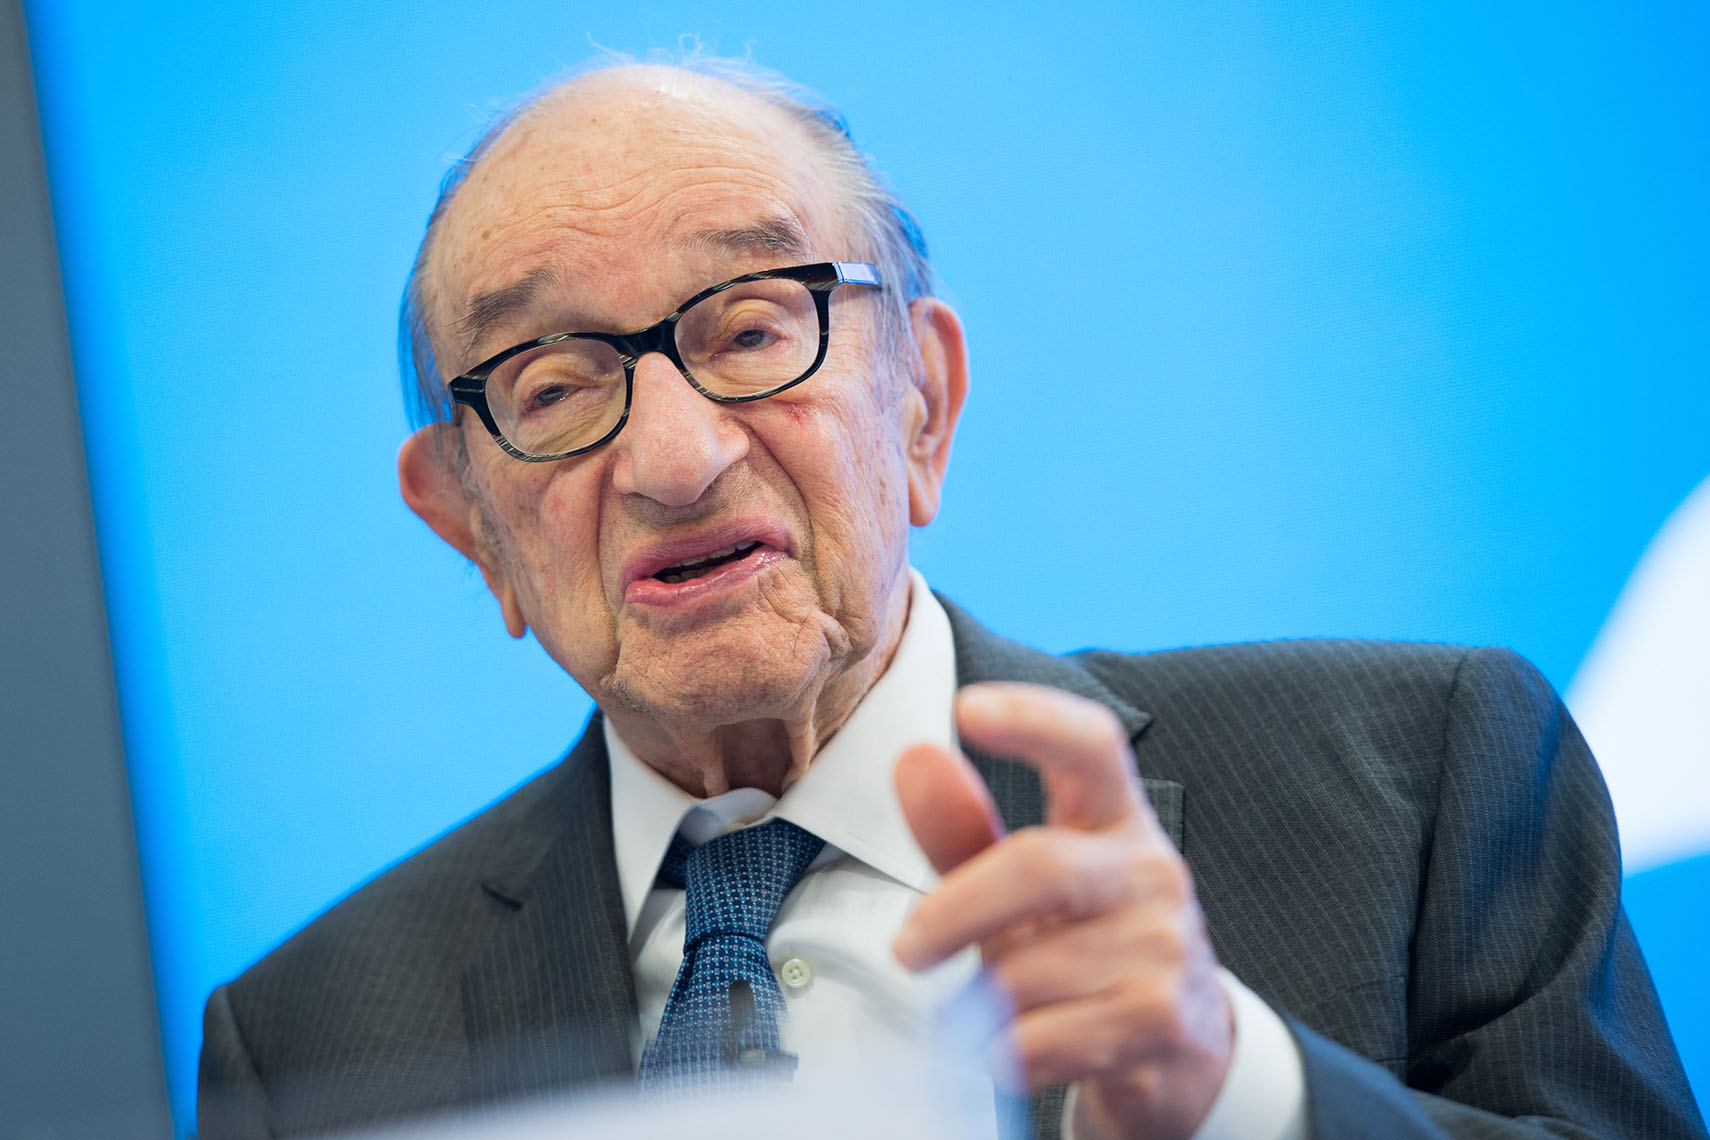 Federal Reserve Chairman Alan Greenspan Close-Up